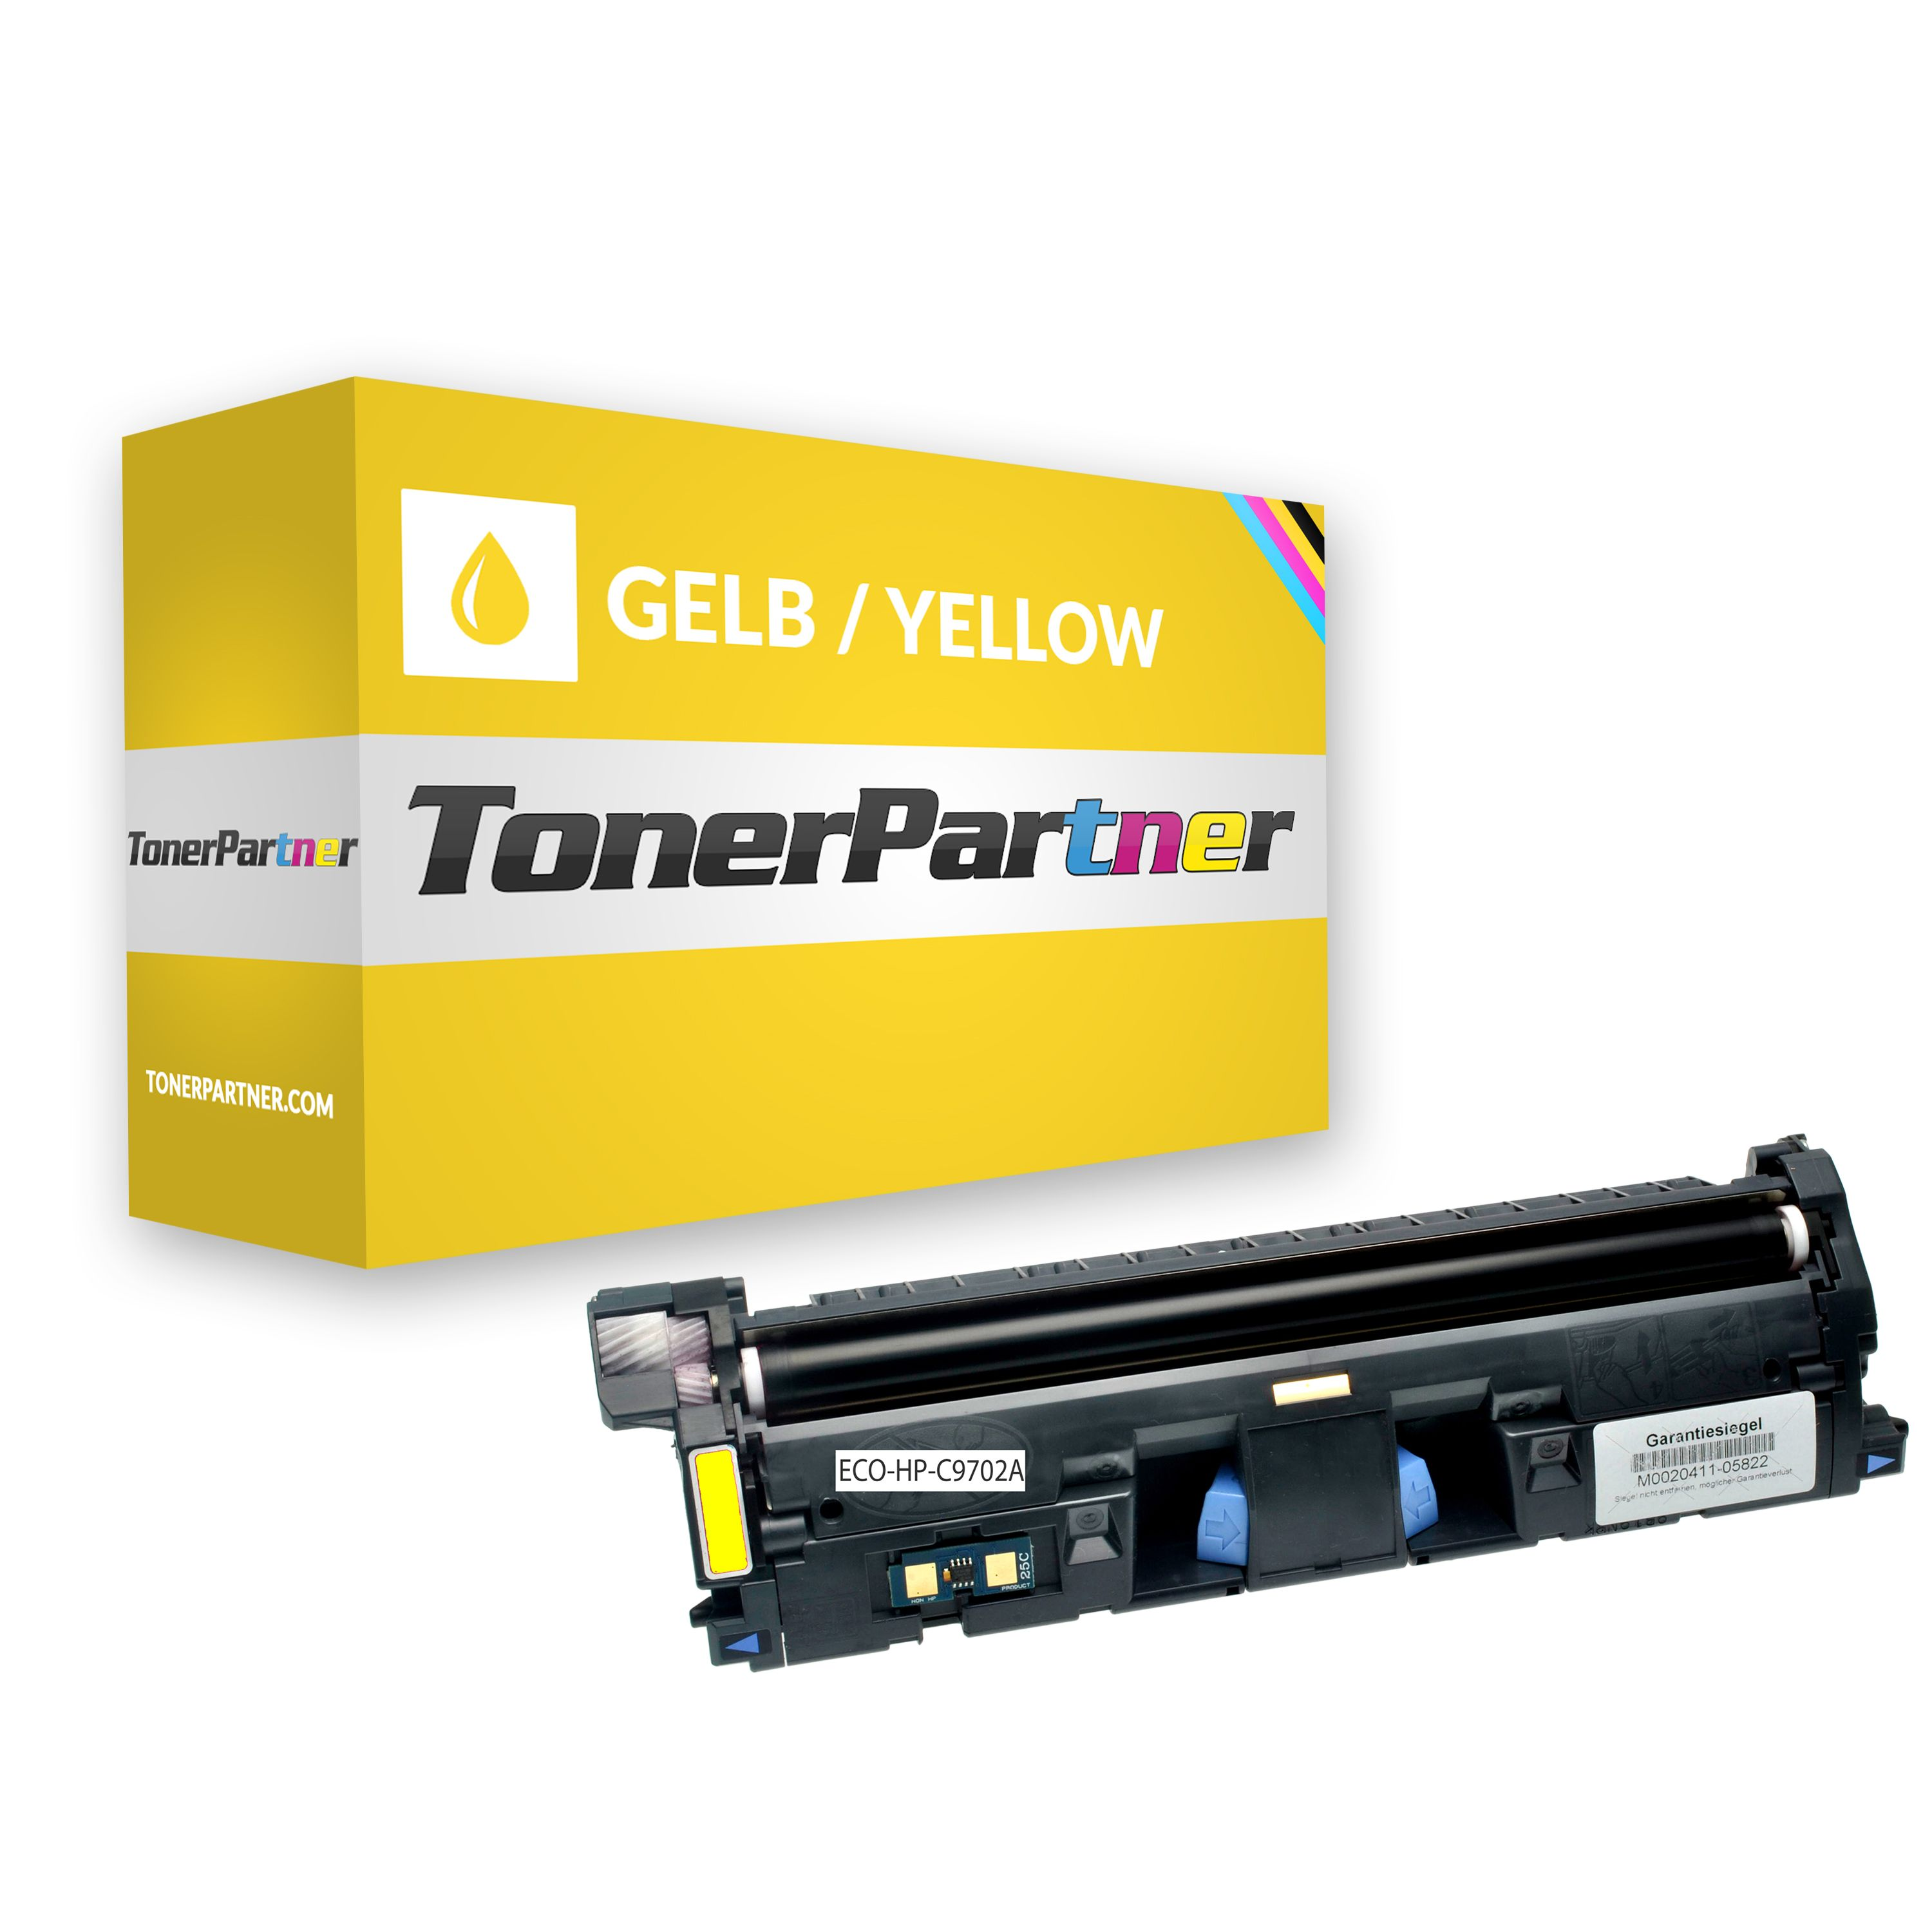 Compatible to HP C9702A / 121A Toner yellow